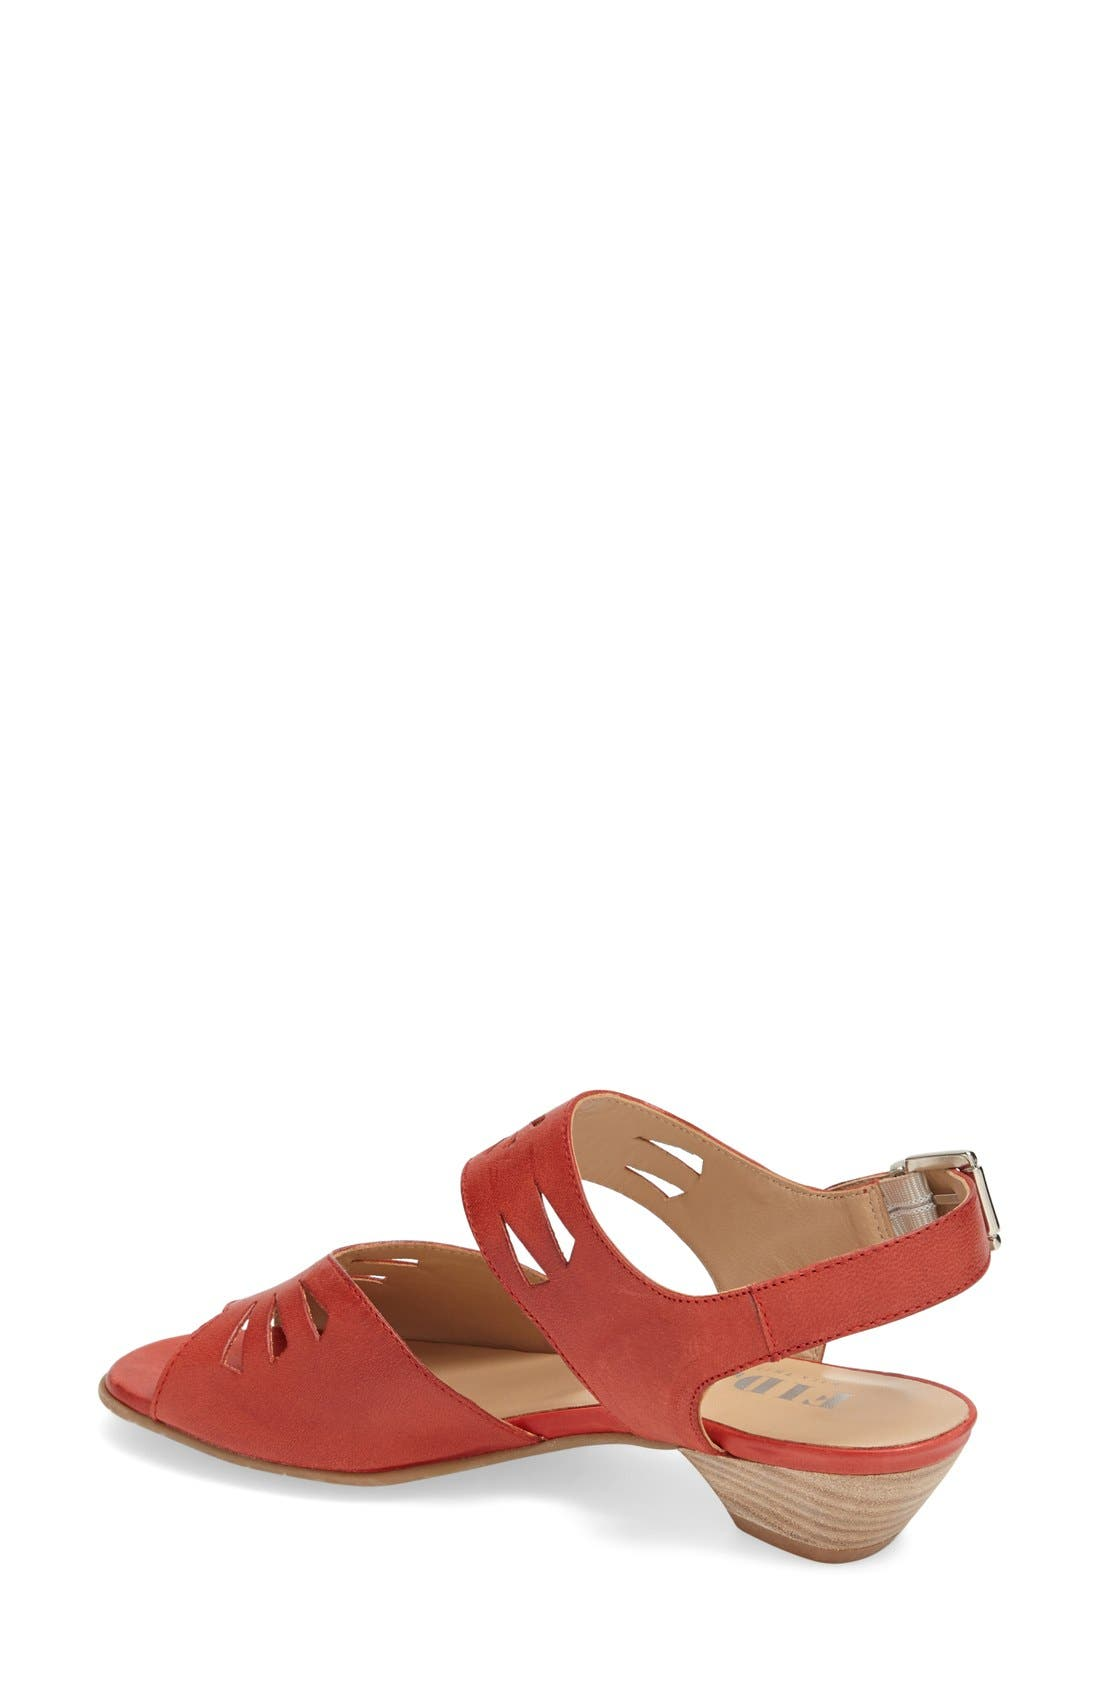 'V112' Perforated Leather Sandal,                             Alternate thumbnail 6, color,                             RED